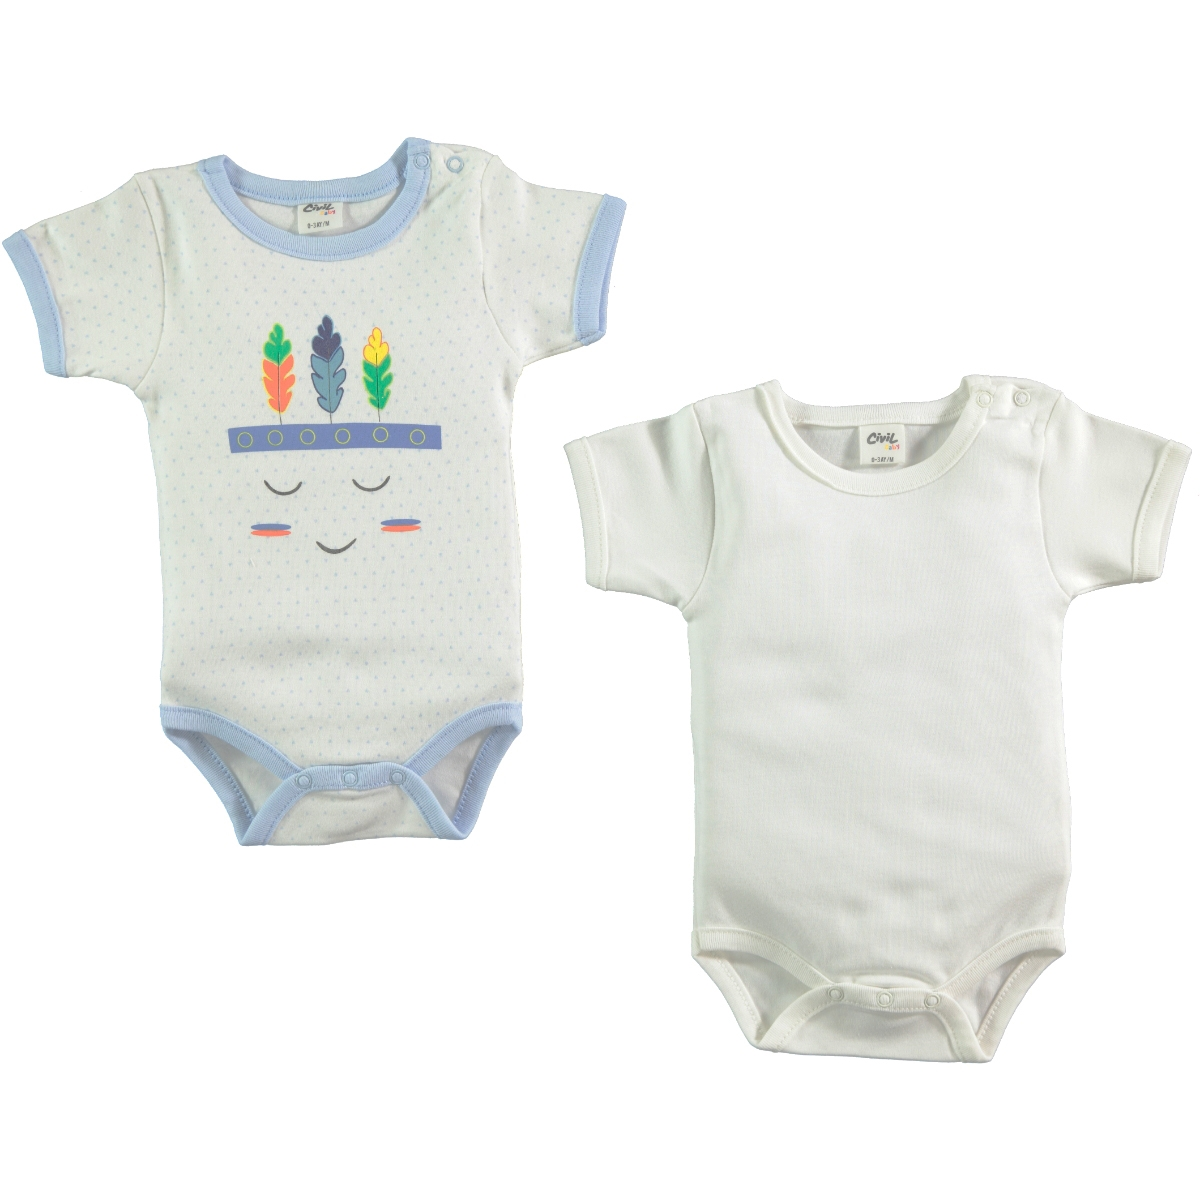 Civil Baby Baby boy 2-0-12 months bodysuit with snaps, blue